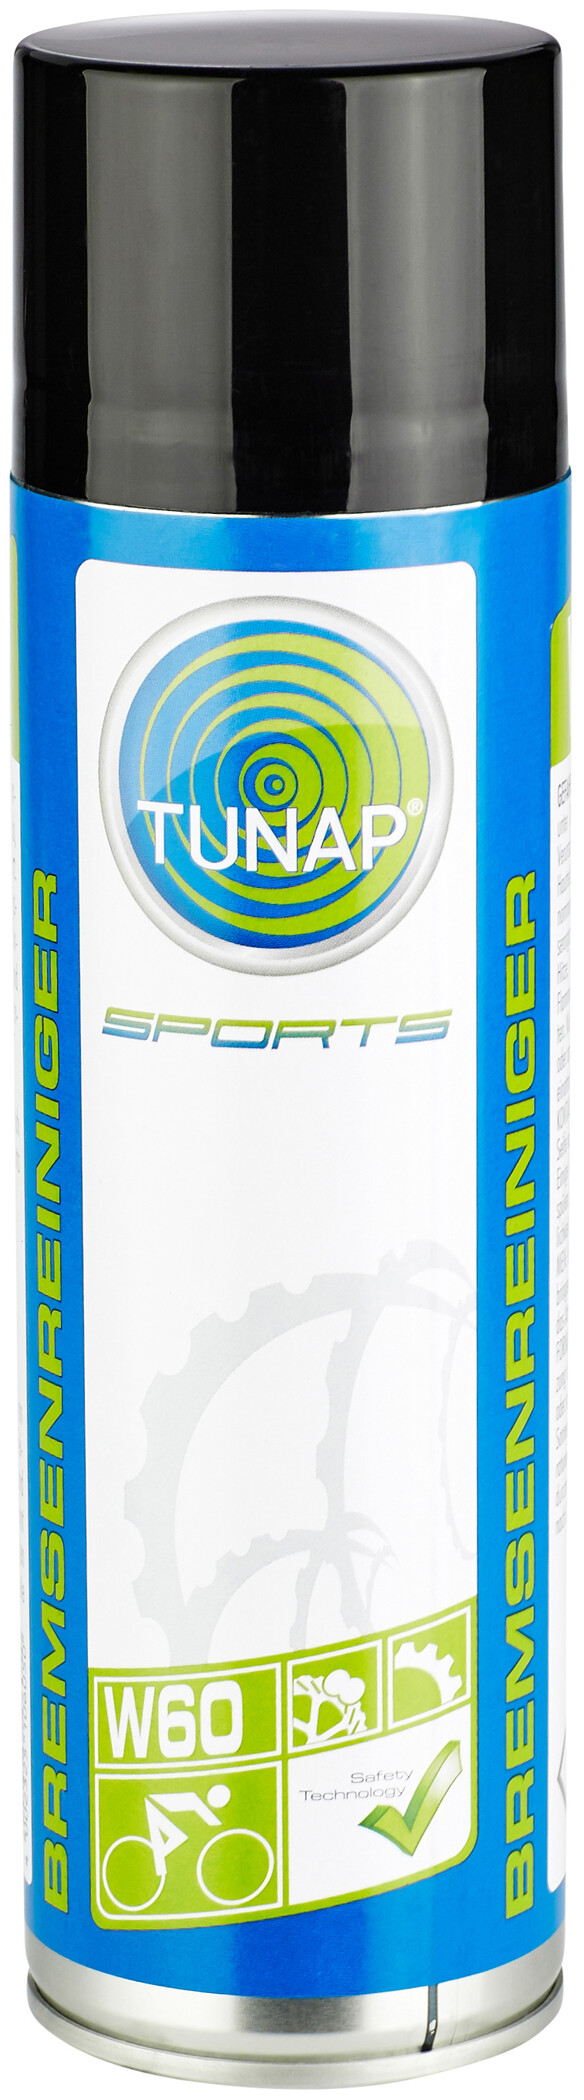 Tunap W60 Bremserens 0.5 l | Brake Cleaner